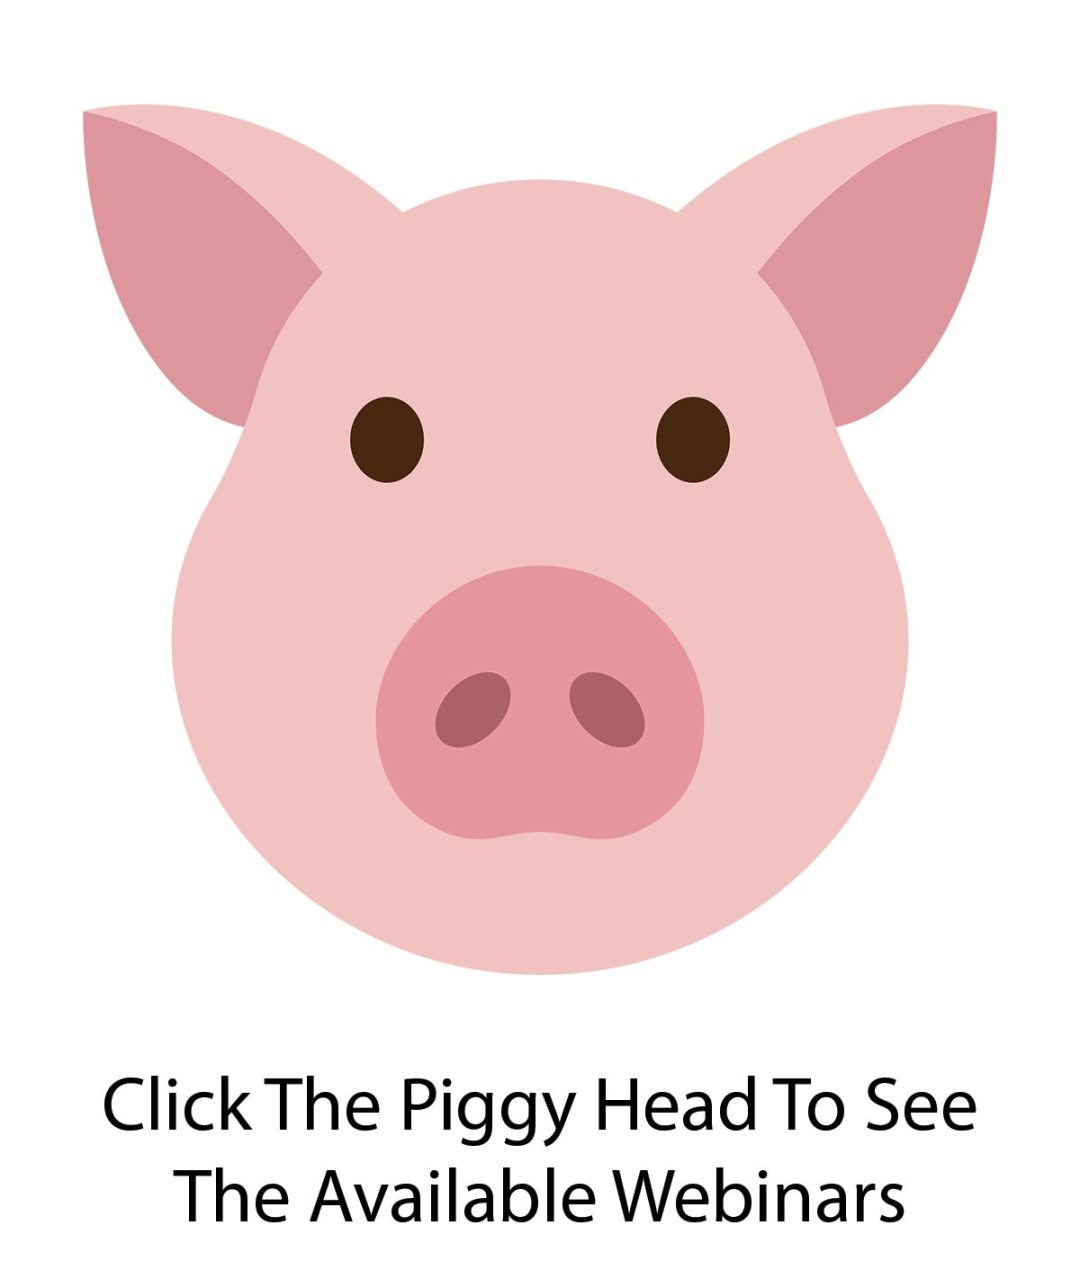 Webinars about your piggy